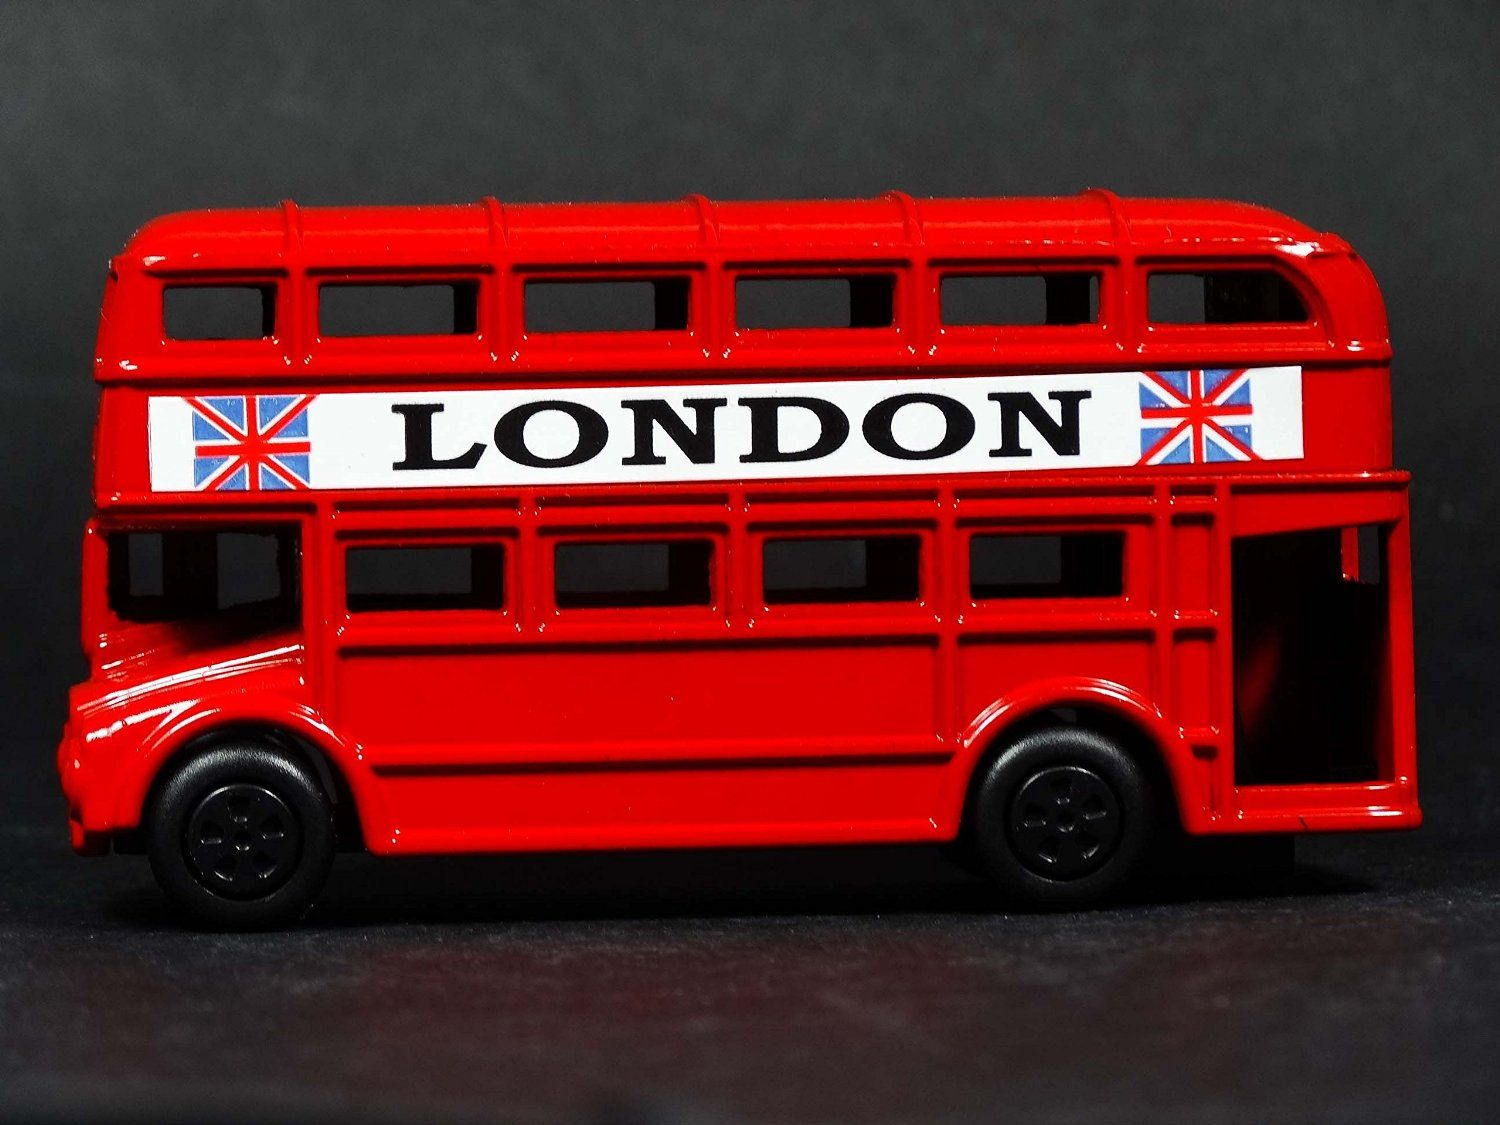 LONDON RED BUS /& BLACK TAXI SET PULL BACK /& GO ACTION TOY SOUVENIR GIFT